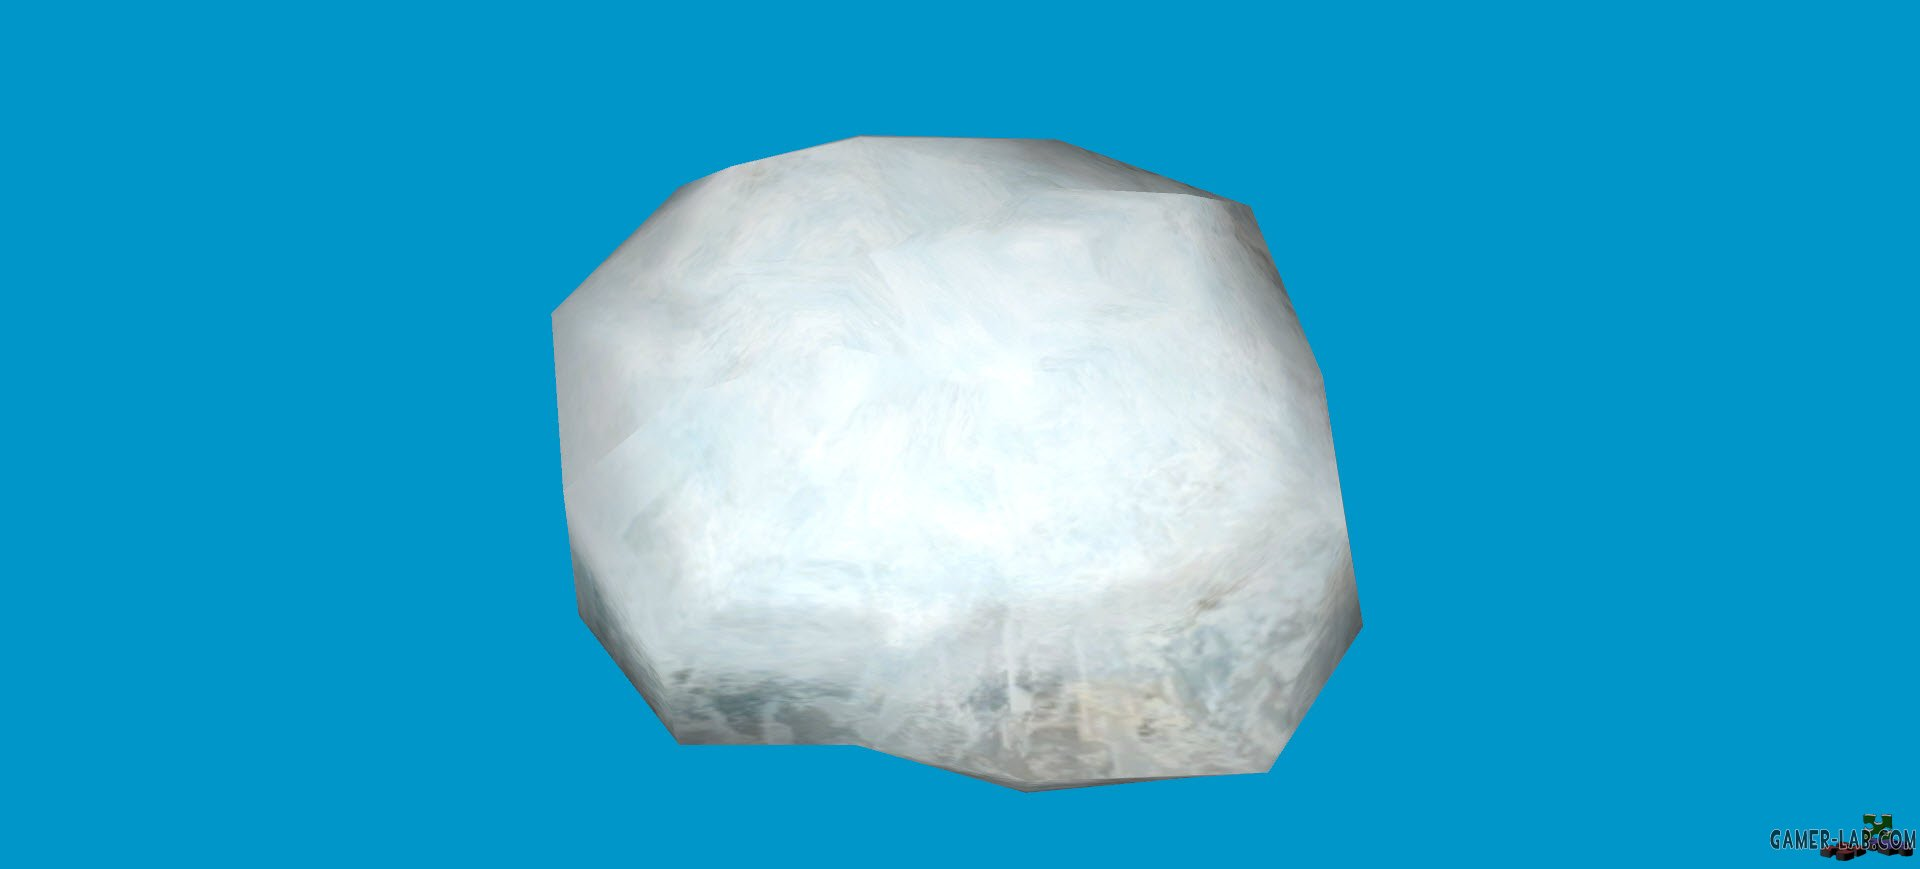 prop_boulder_little_1